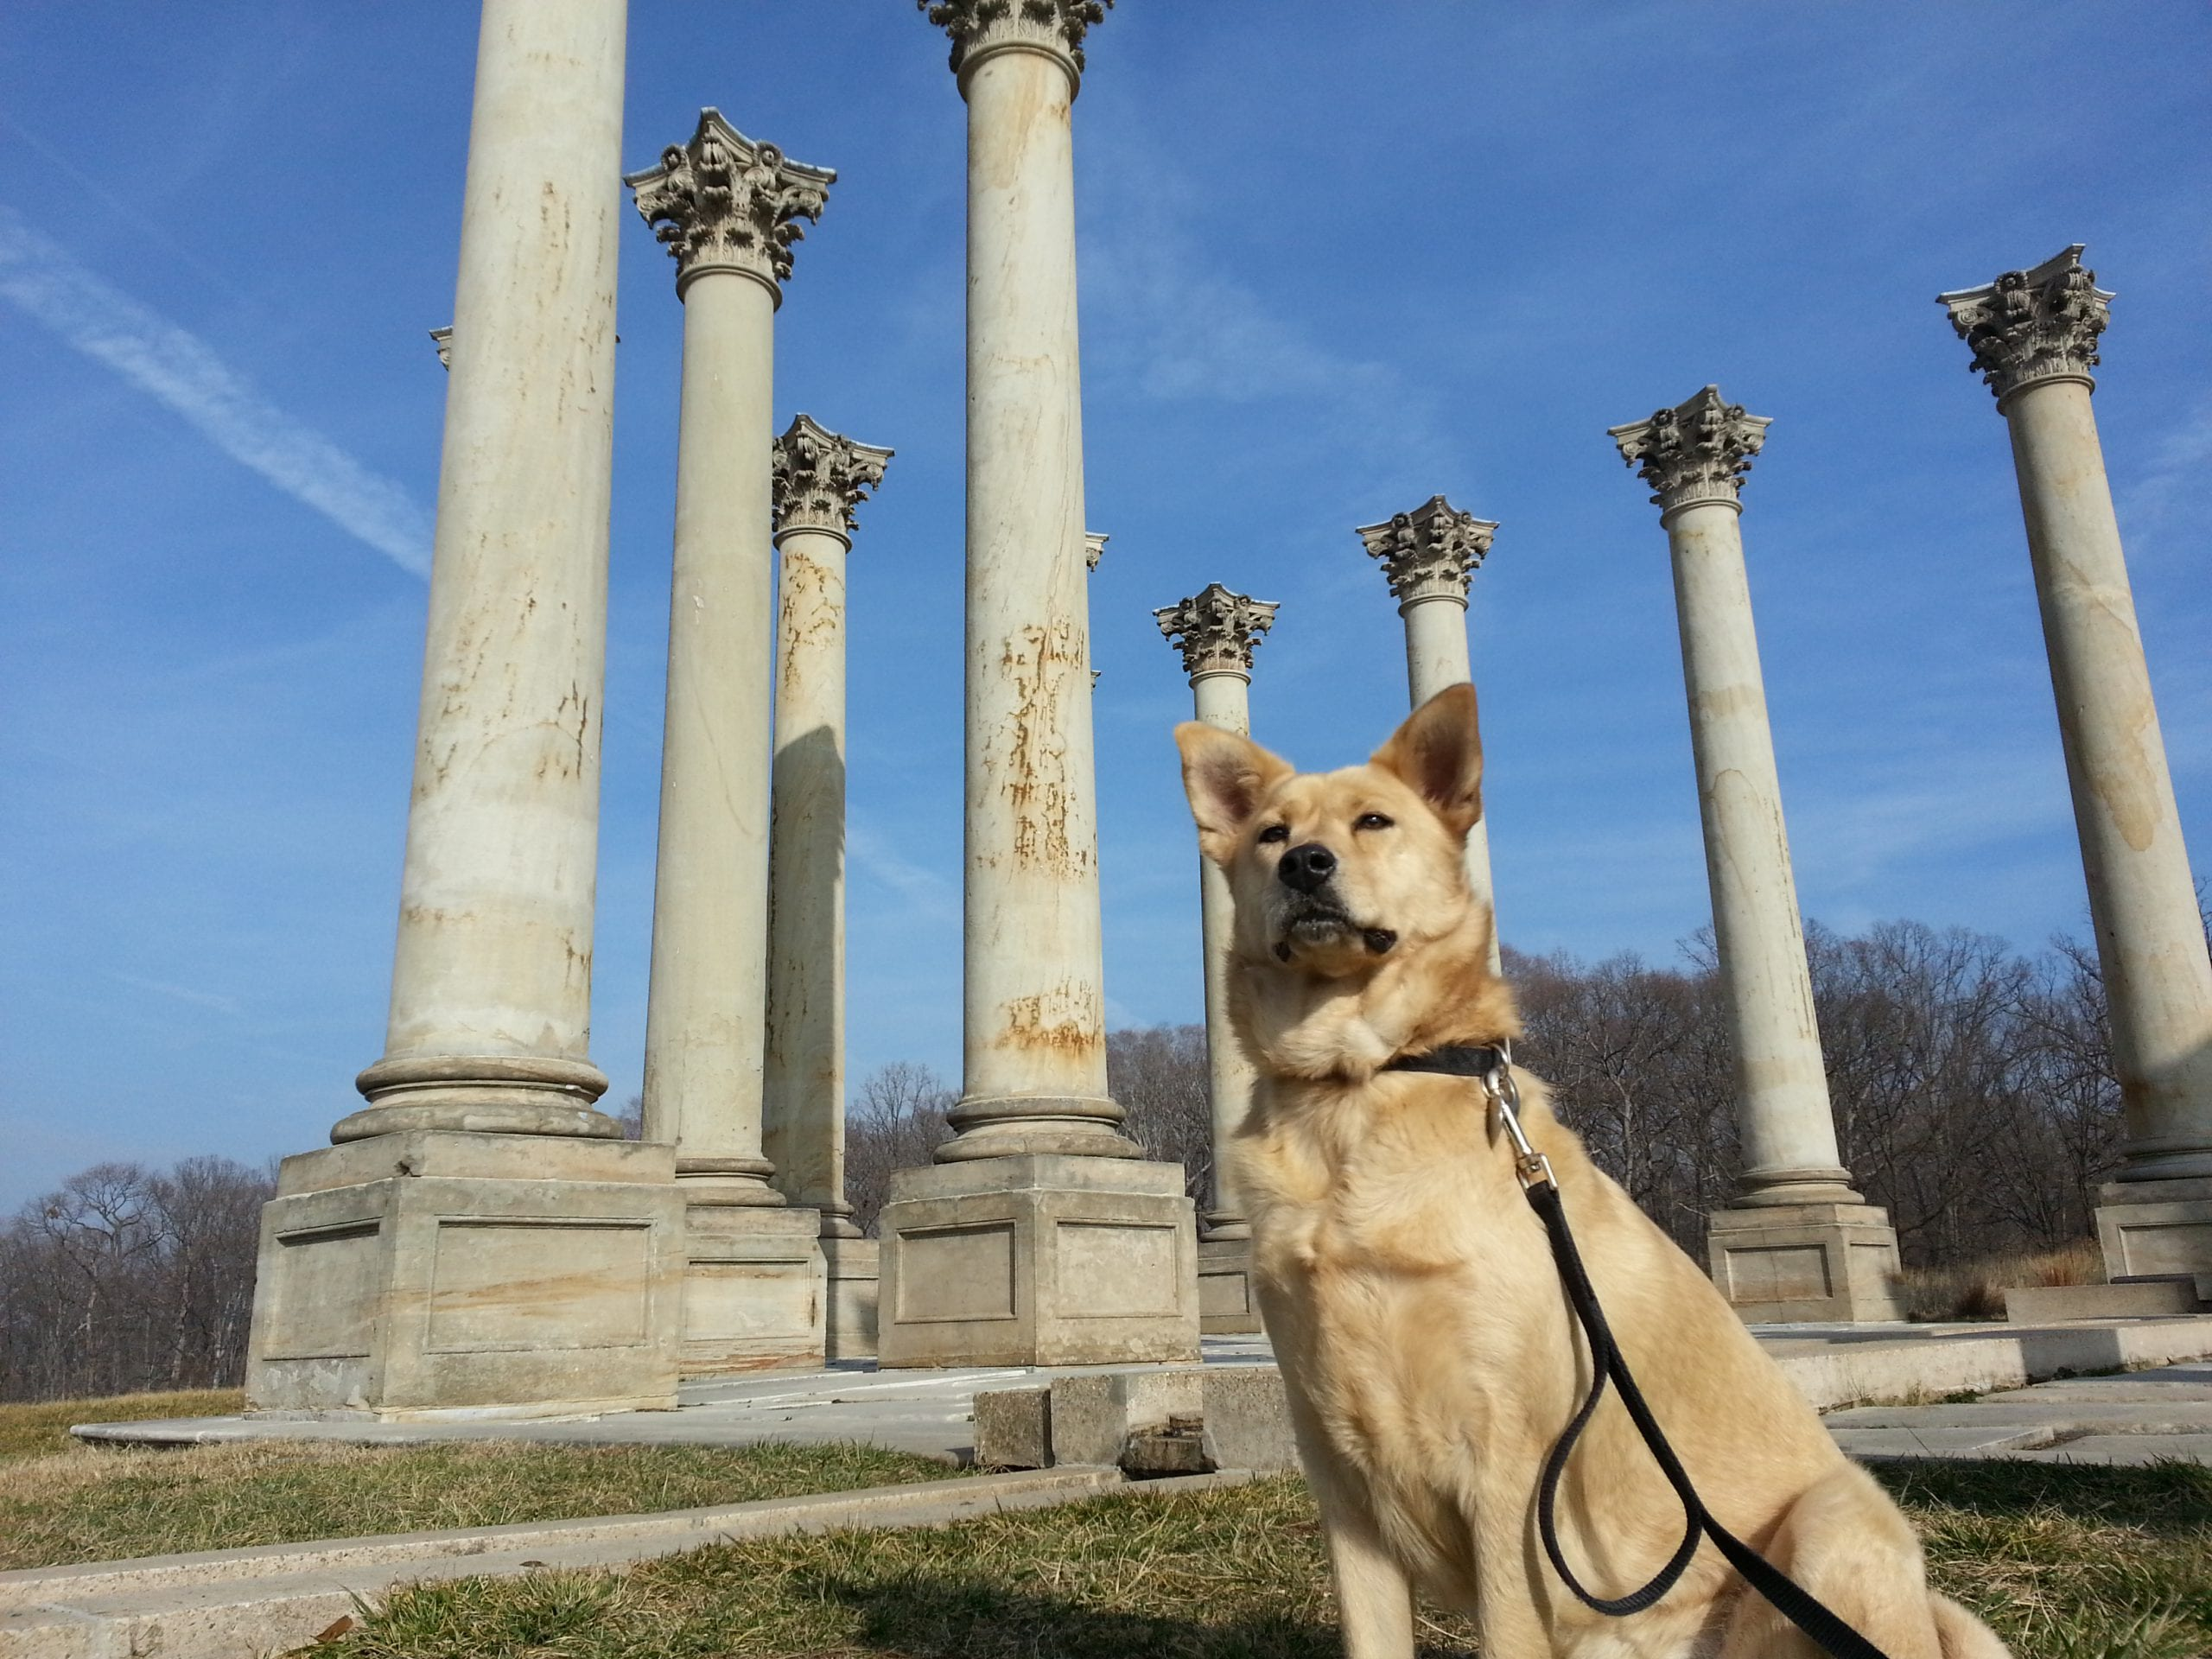 Ghost Dog at the old Capitol columns in the National Arboretum (looking for stories)